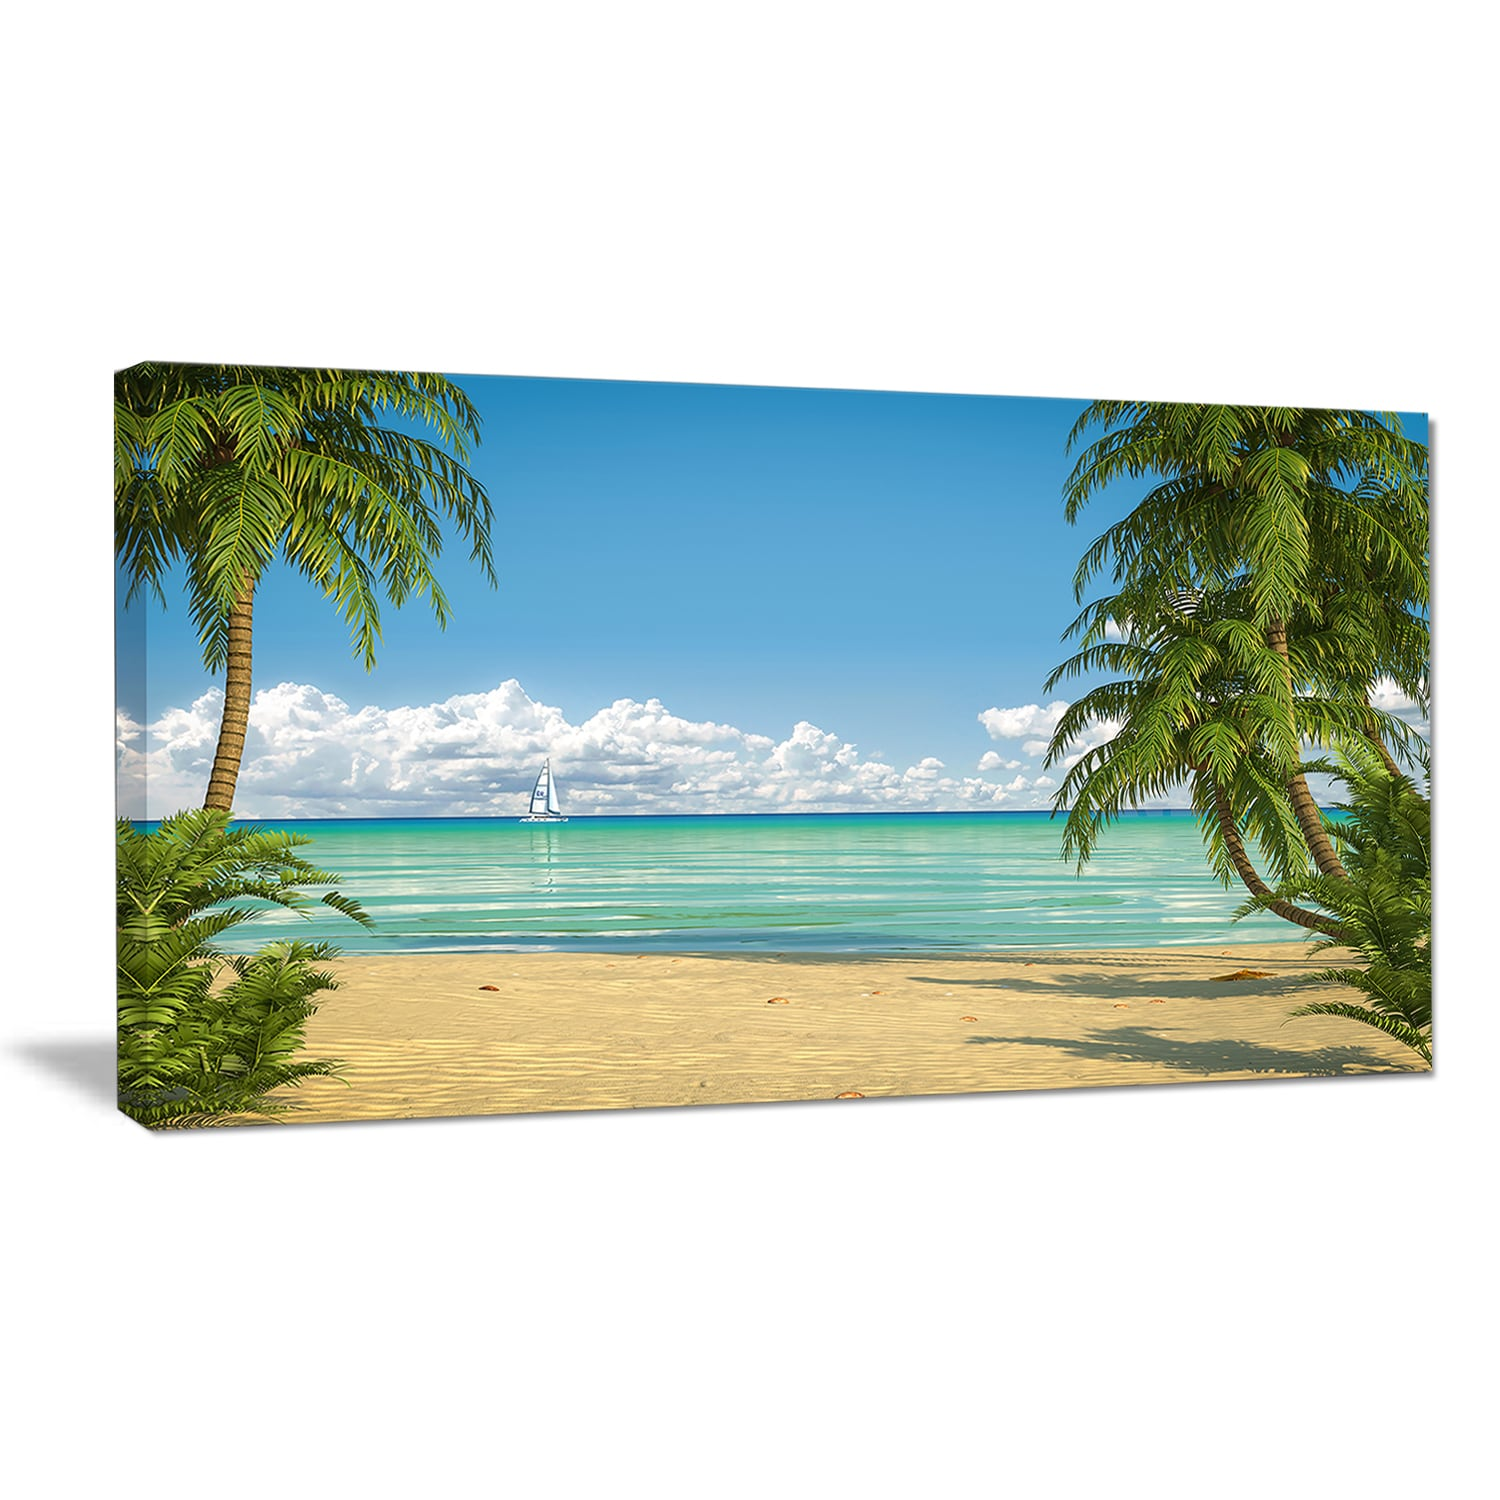 Palms-at-Caribbean-Beach-Seashore-Photo-Canvas-Art-Print-Small thumbnail 8